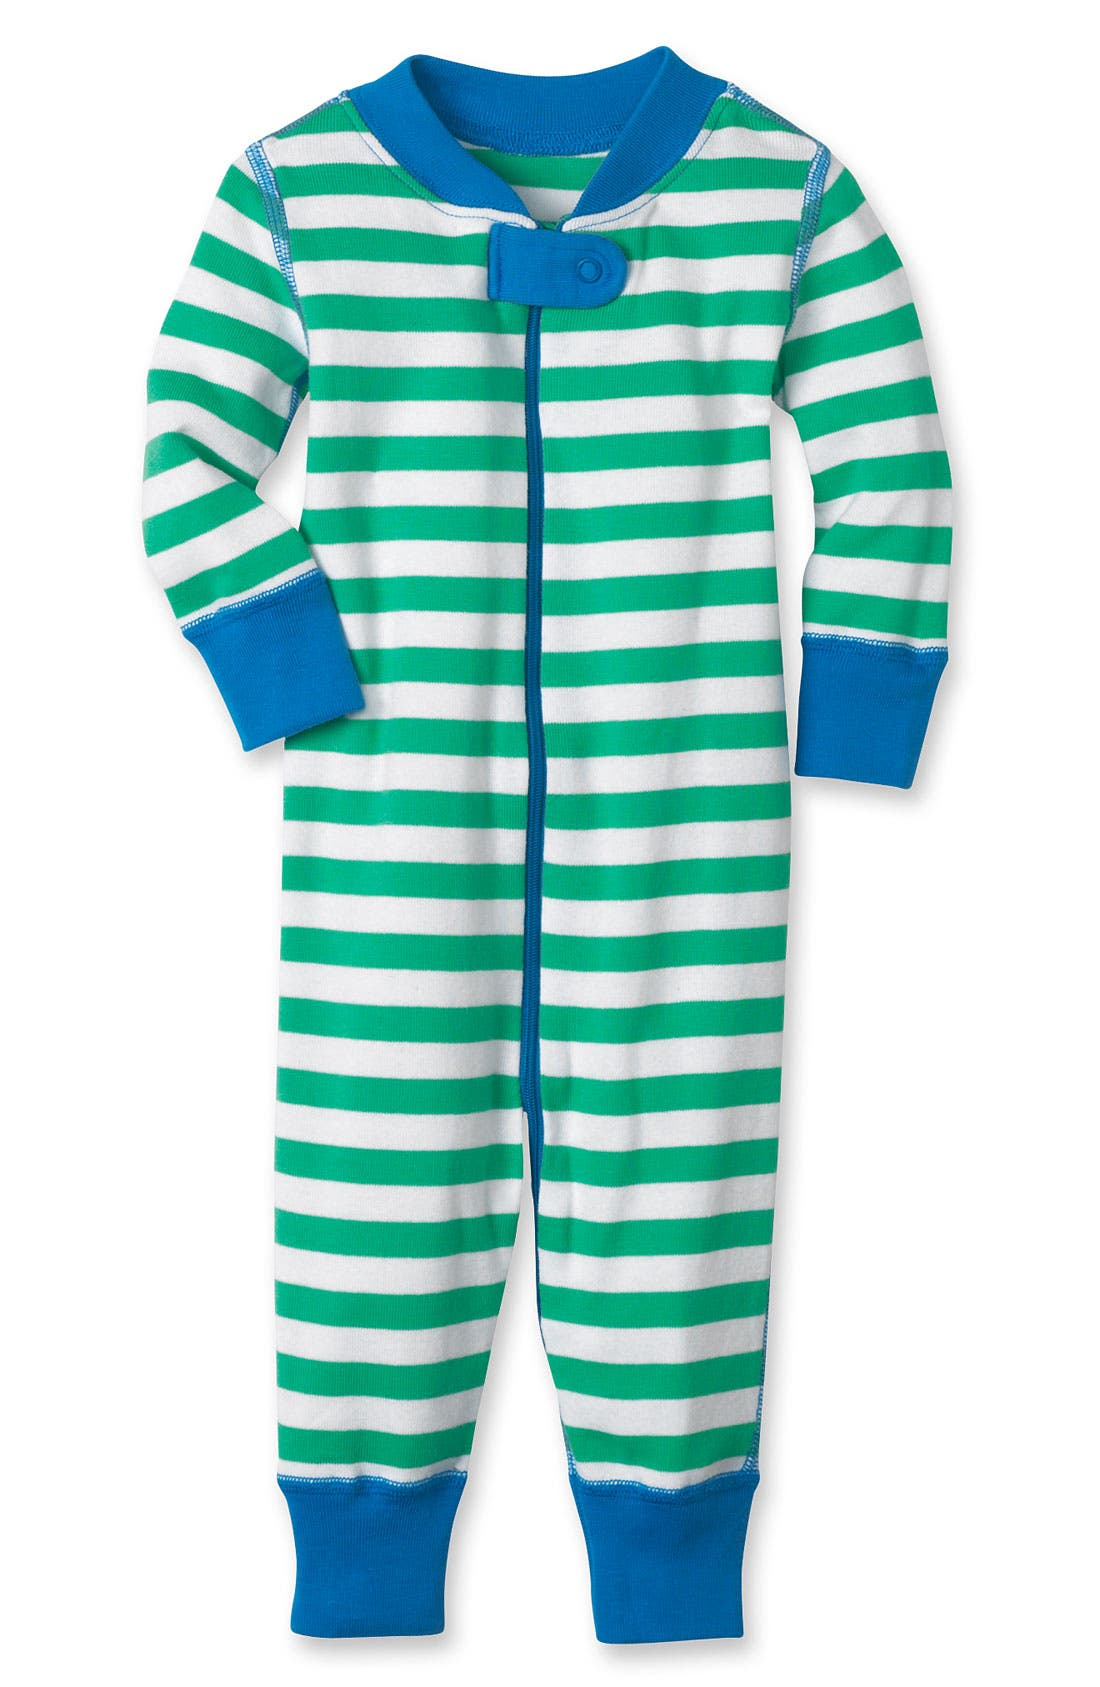 Alternate Image 1 Selected - Hanna Andersson Organic Cotton Fitted One-Piece Pajamas (Baby)